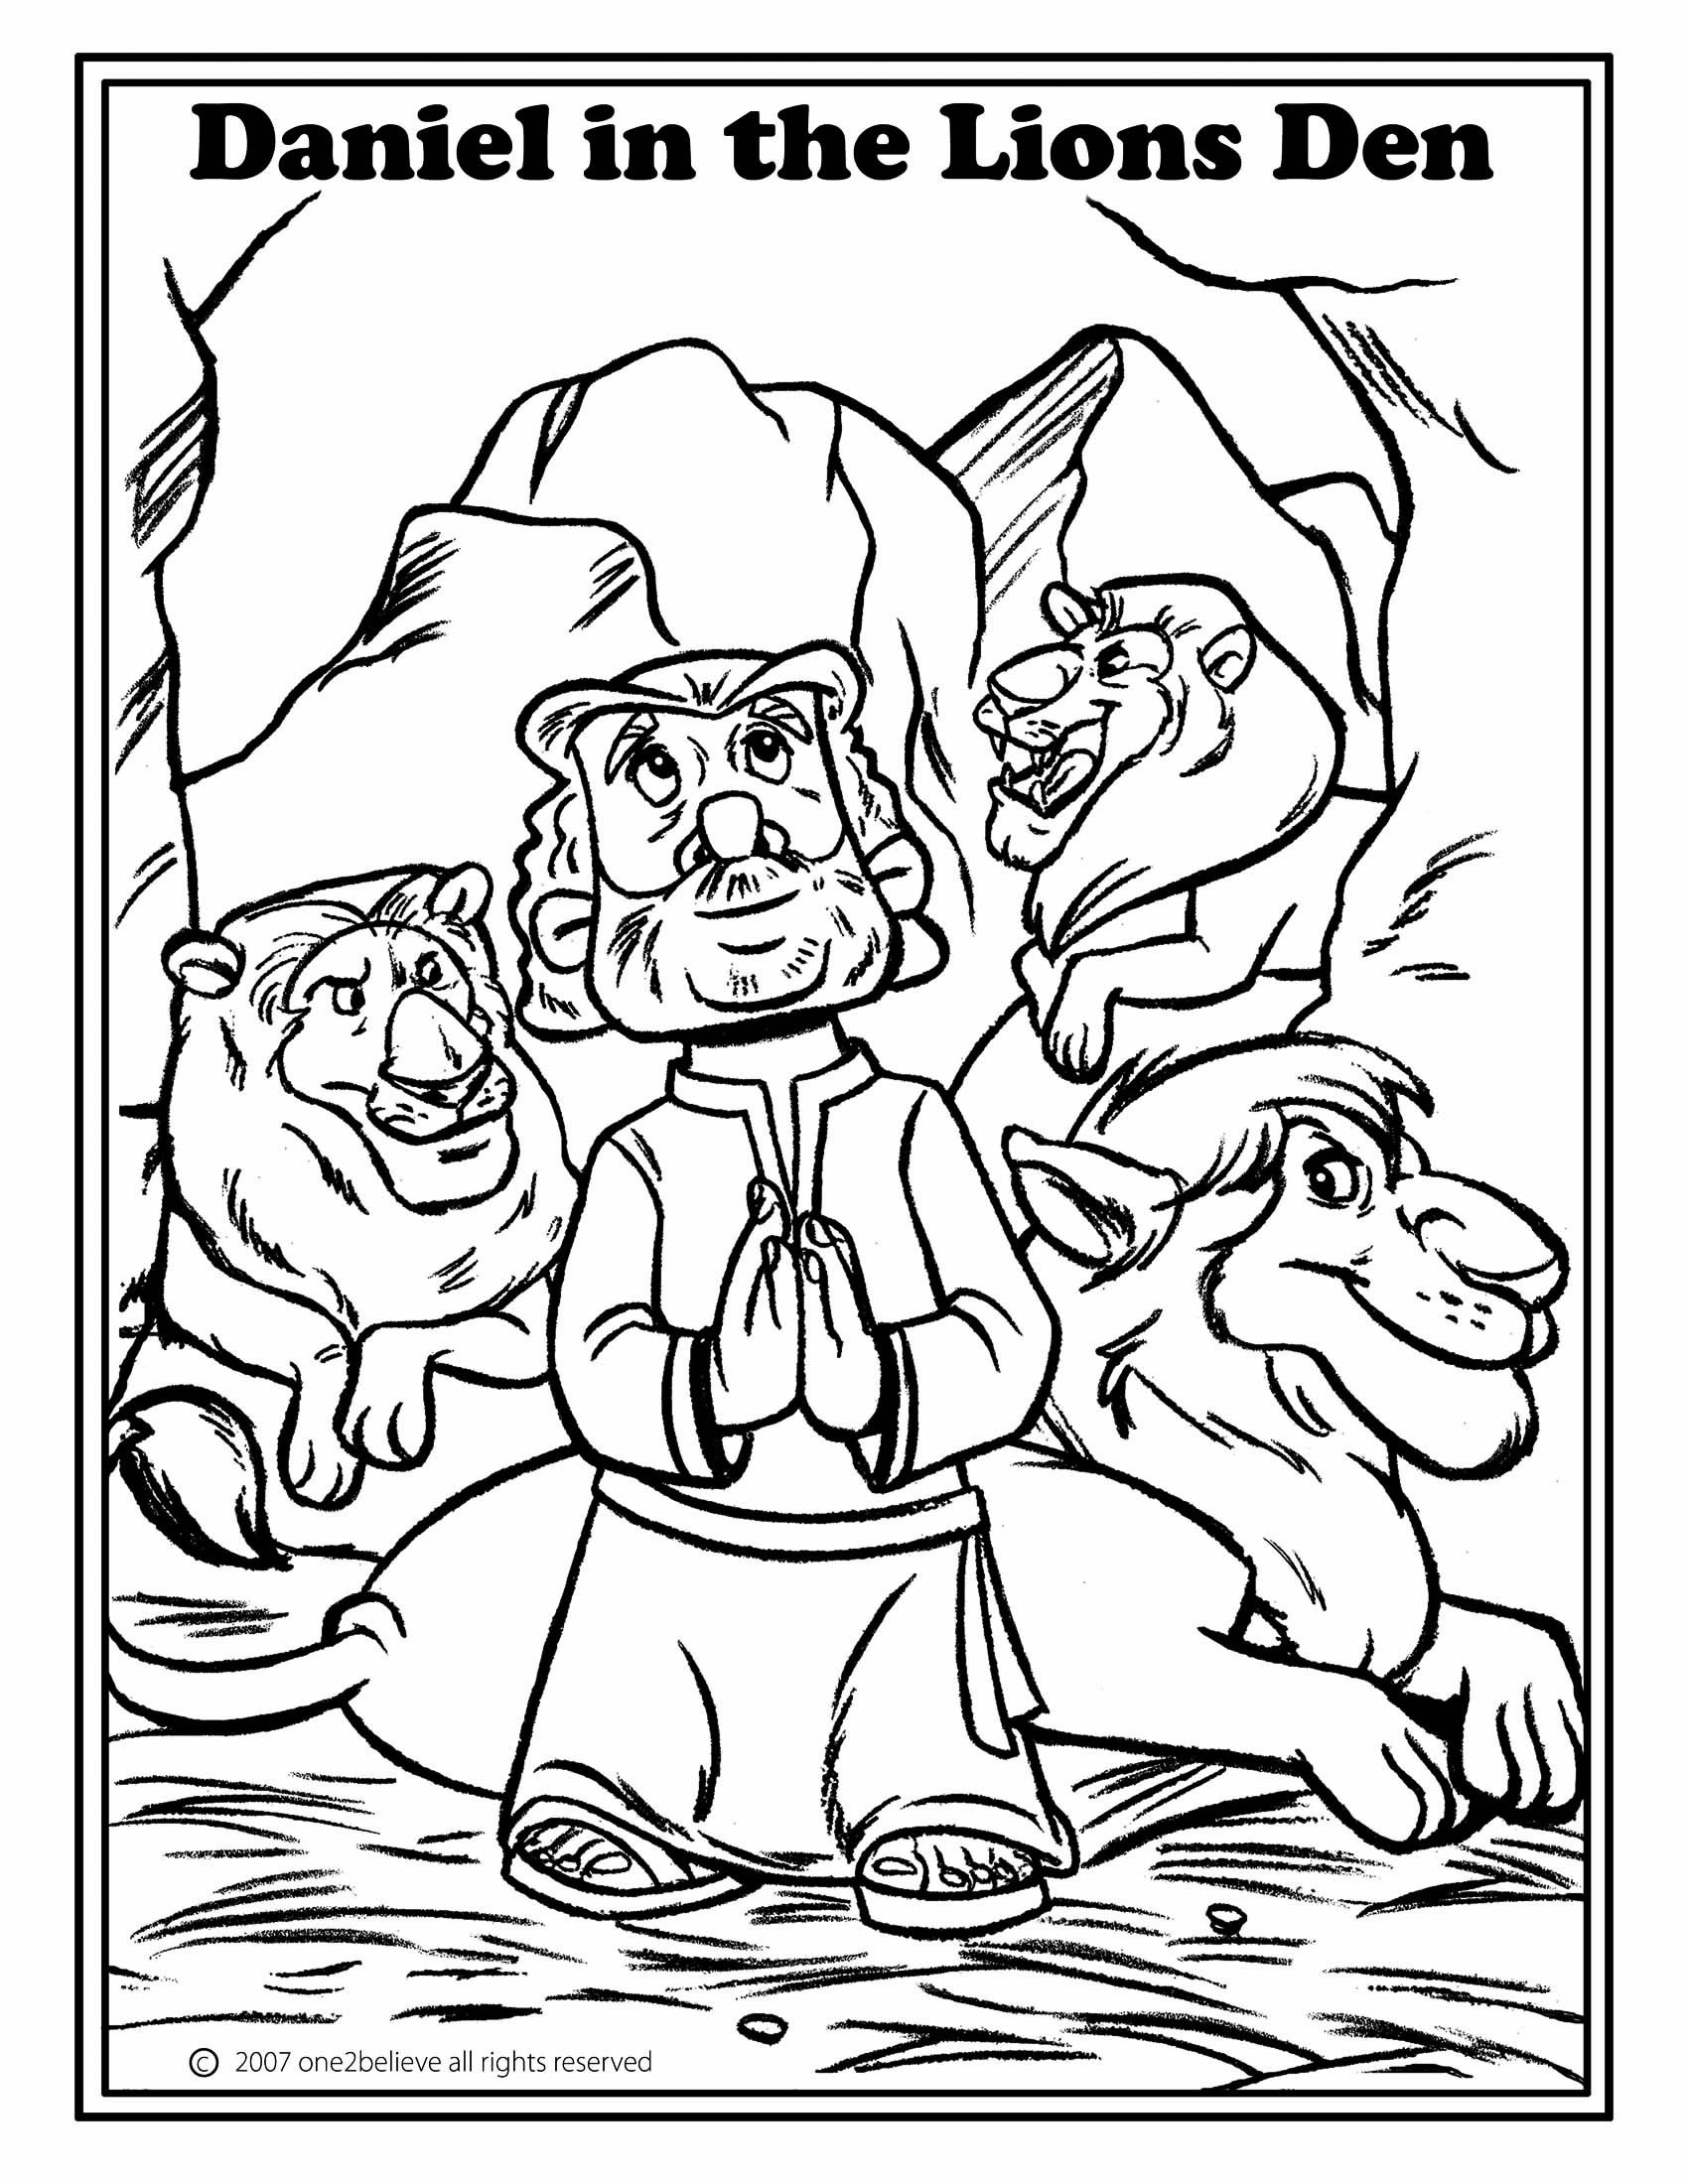 Daniel Coloring Pages Bible  Gallery 15i - Free Download